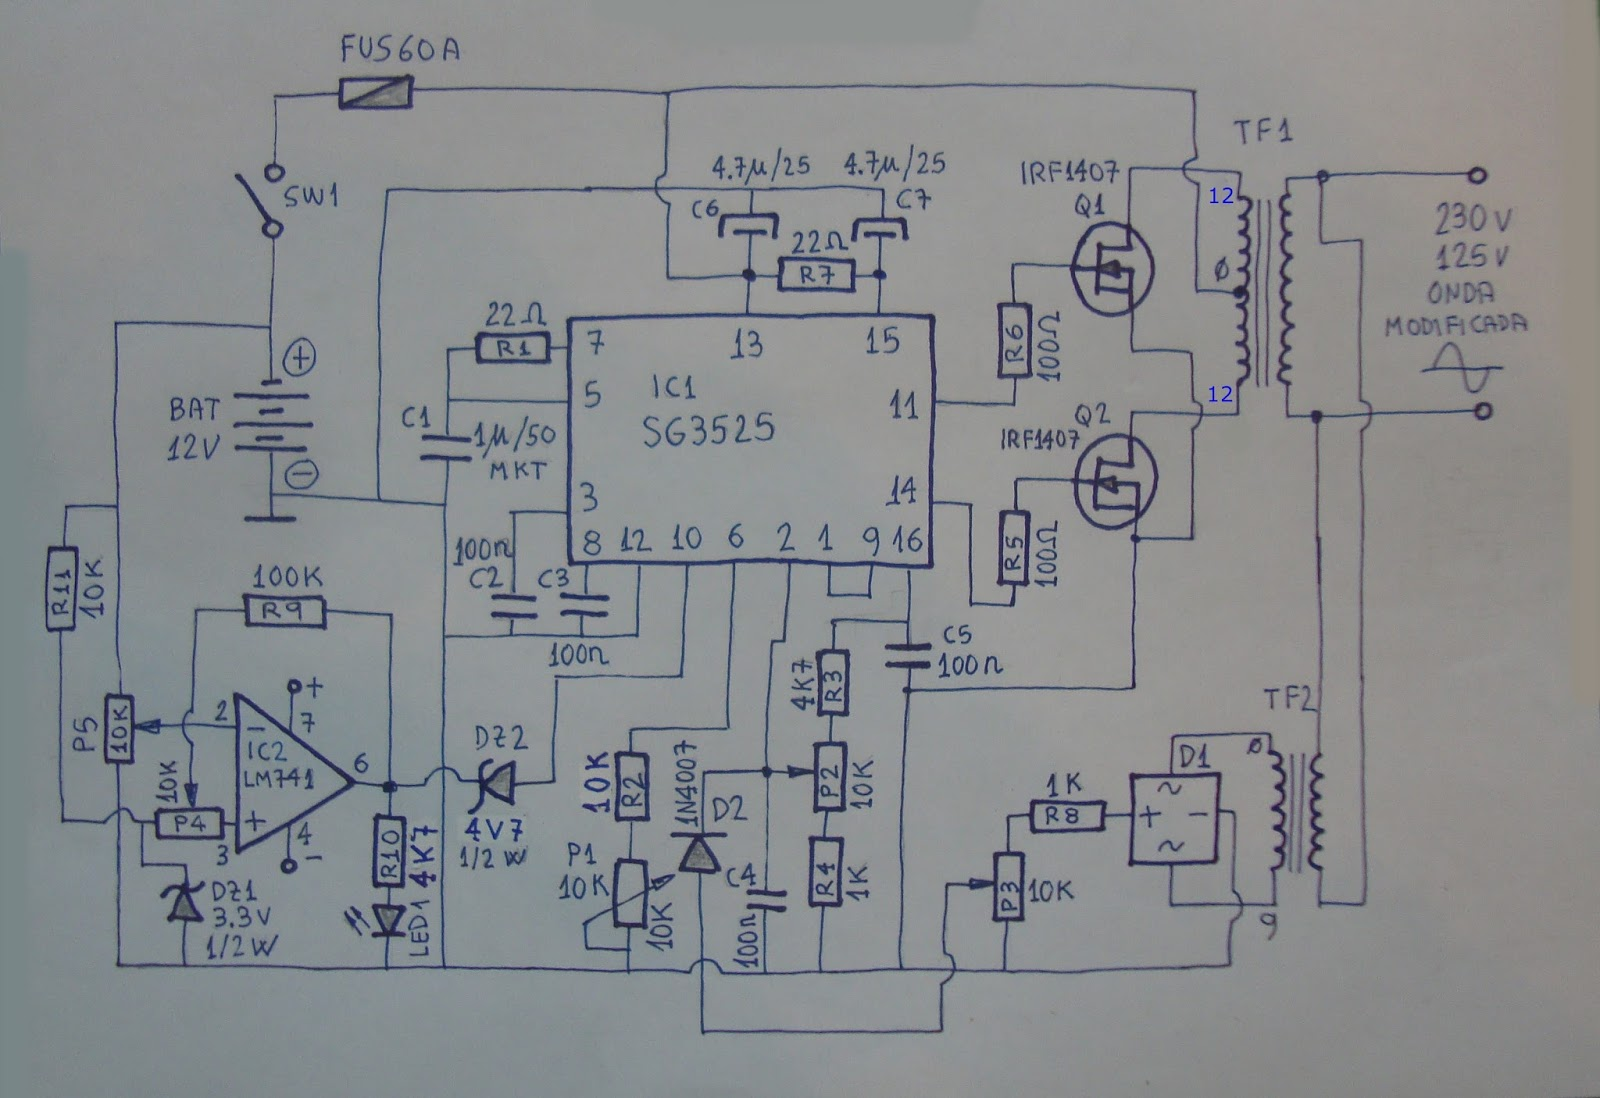 3a 6v12v Solar Charge Control in addition Super Simple Inverter together with Simplest Piezo Driver Circuit Explained together with Step Up Voltage Converter likewise 555 Timer Audio Alarm Circuits. on circuit diagram of simple inverter 5